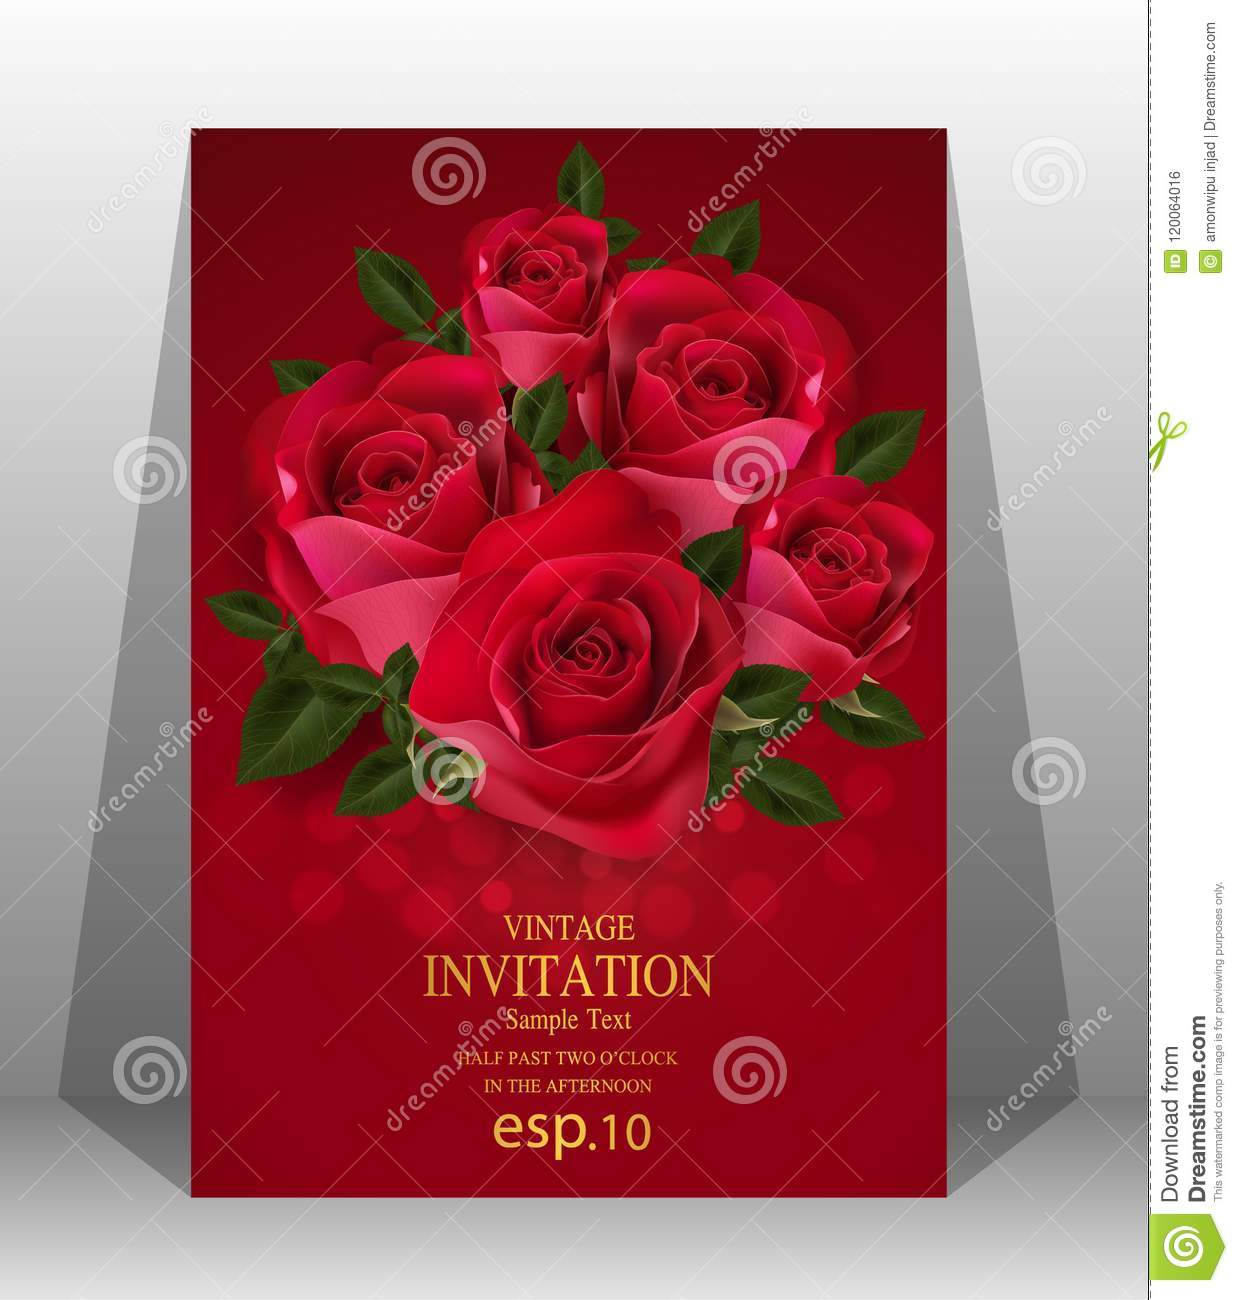 Colorful Wedding Invitation Card Template Free Download Illustration ...